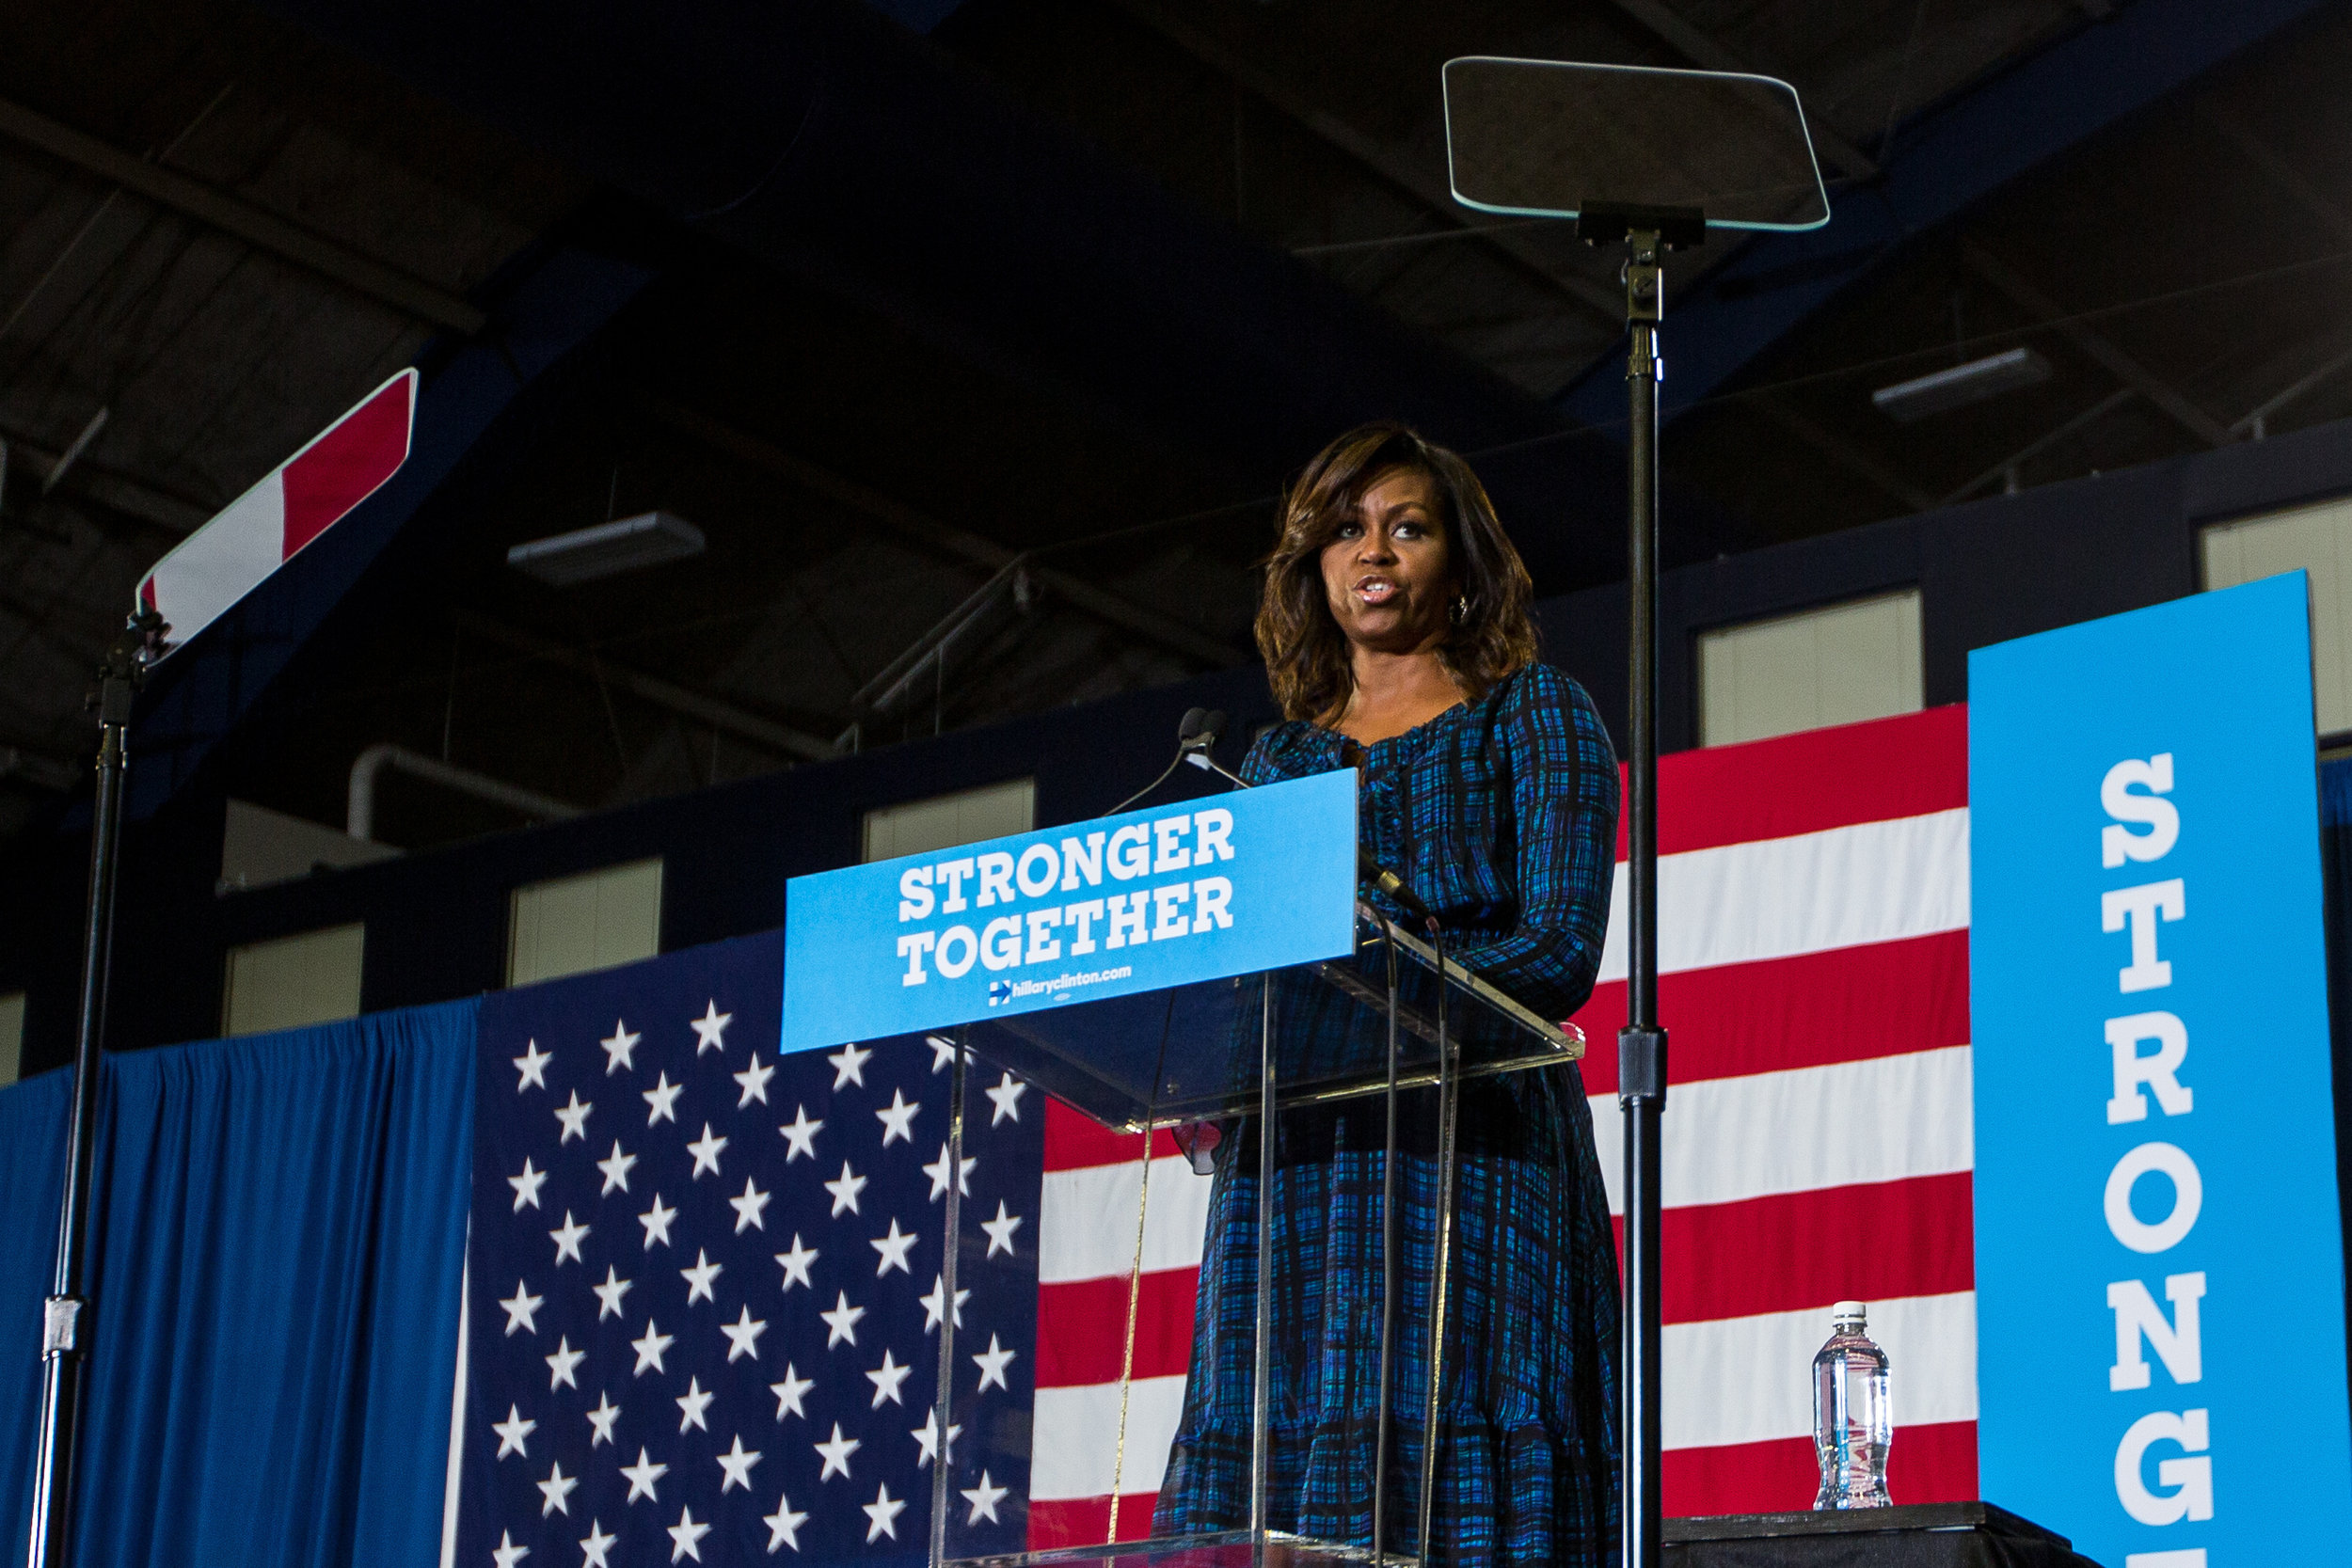 First Lady Michelle Obama addresses thousands at the Fitzgerald Field House at the University of Pittsburgh on Wednesday afternoon. First Lady Michelle Obama showed her support for Democratic presidential nominee Hillary Clinton and encouraged young people to vote.